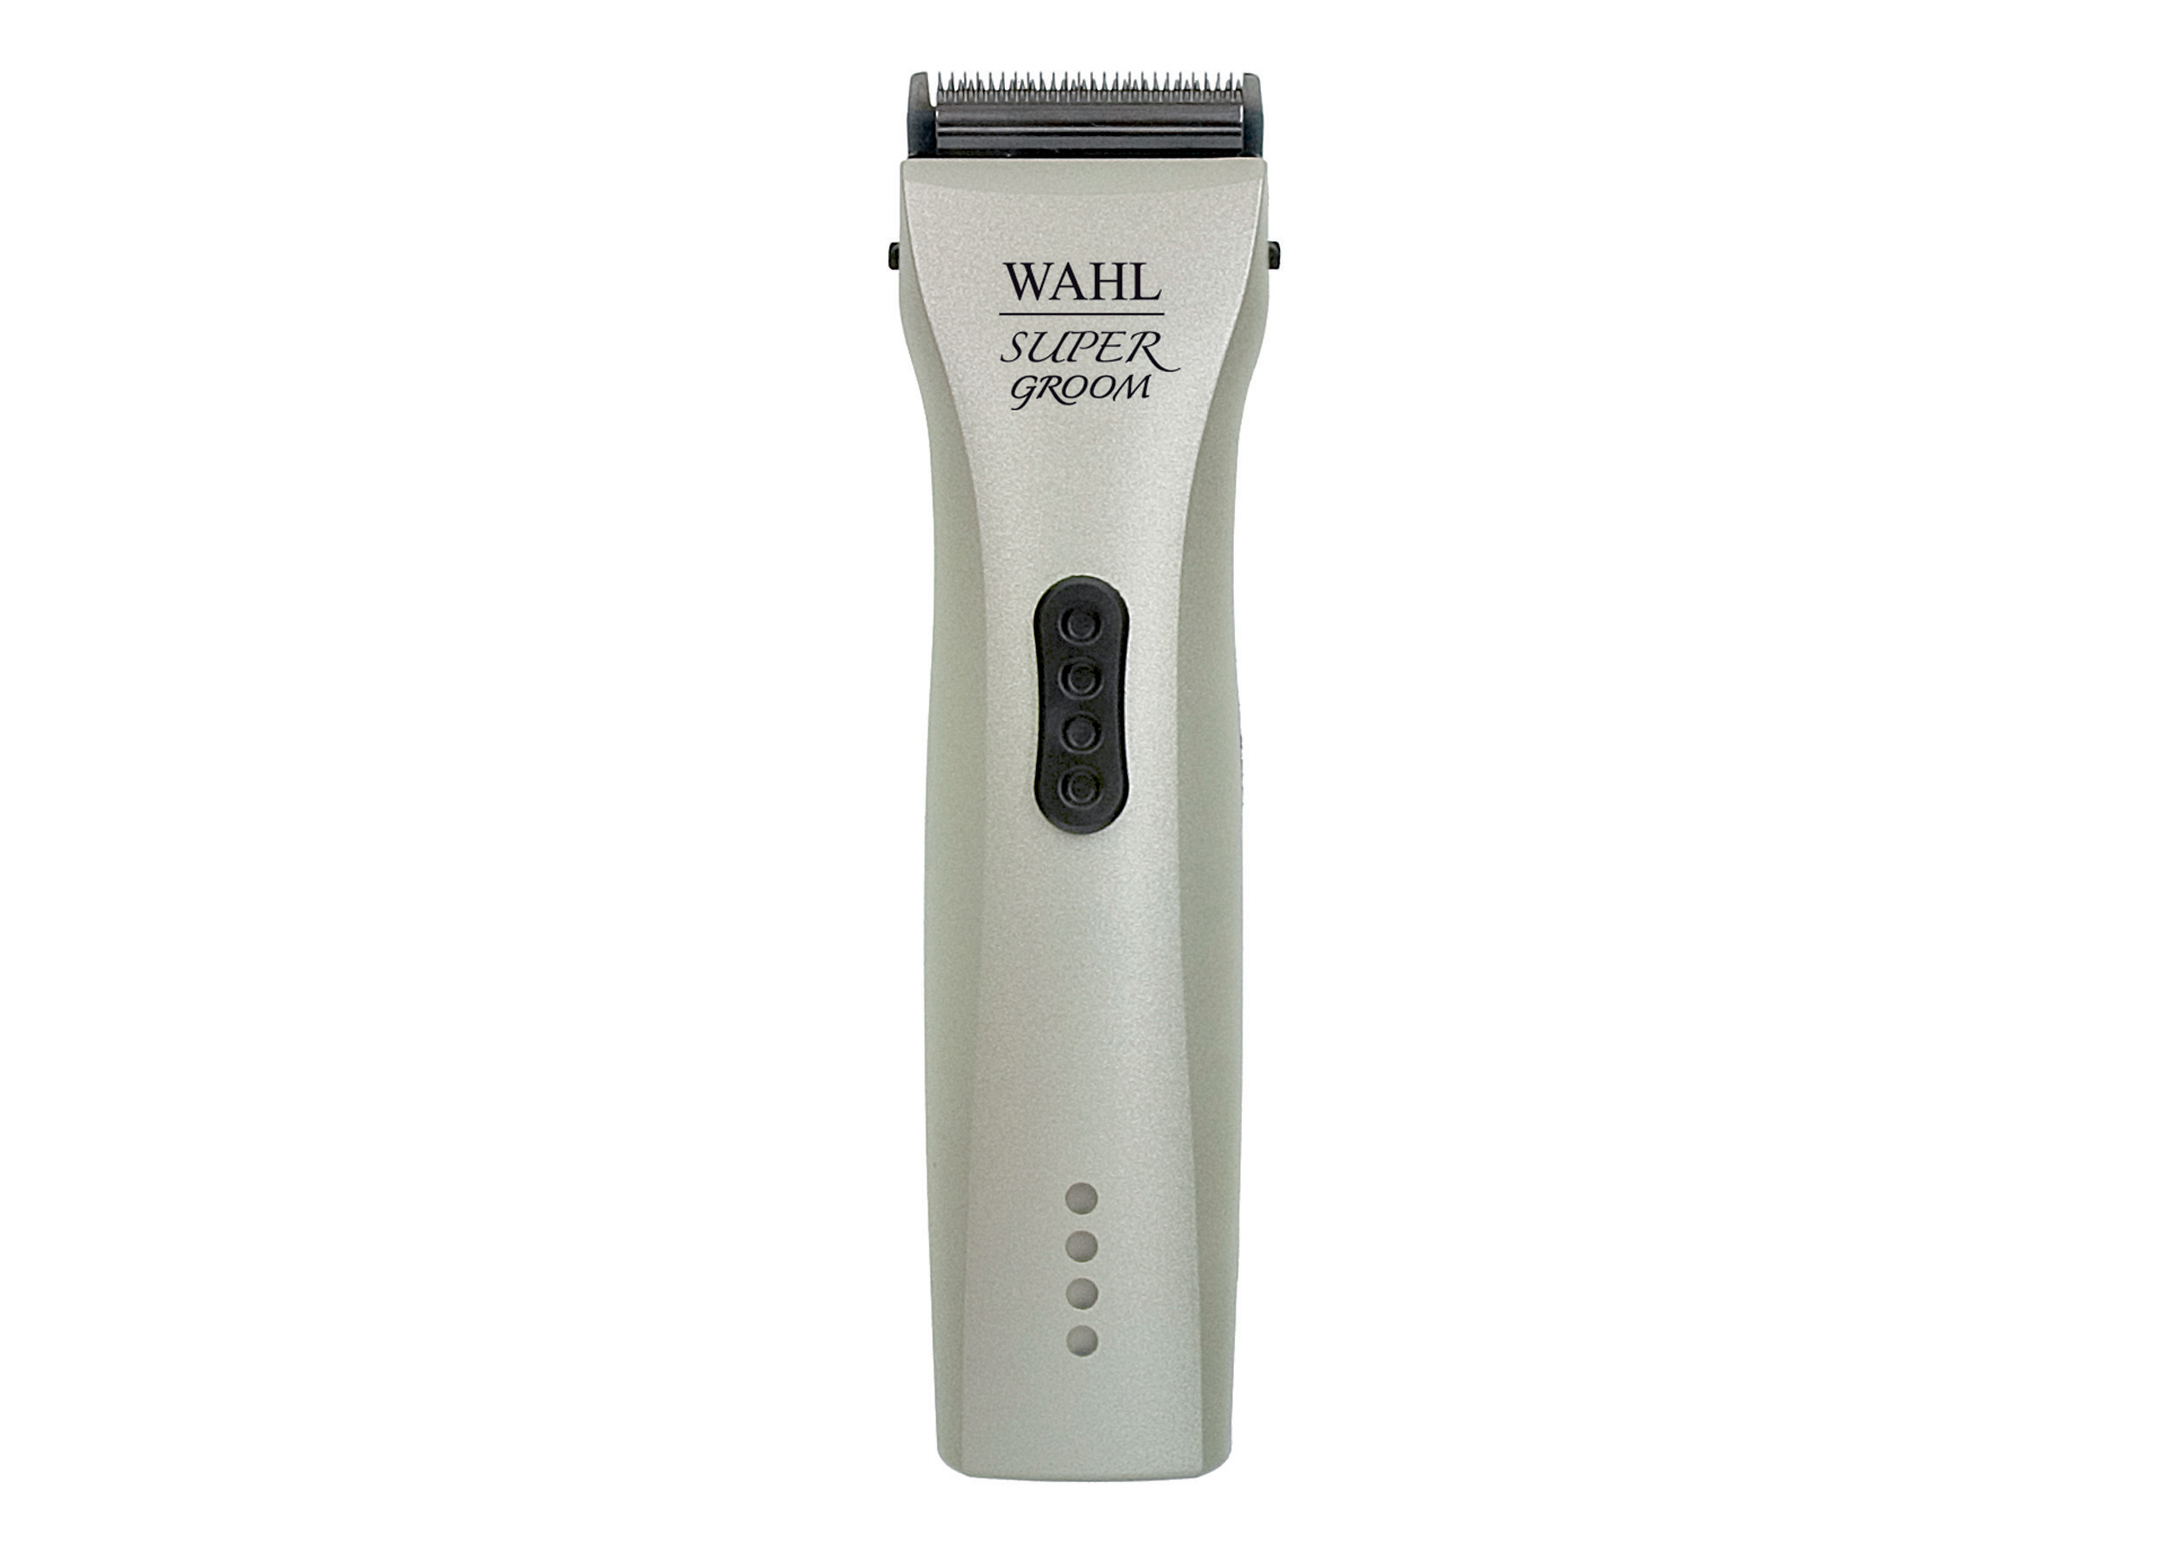 Wahl Super Groom 1872 Cordless Clipper